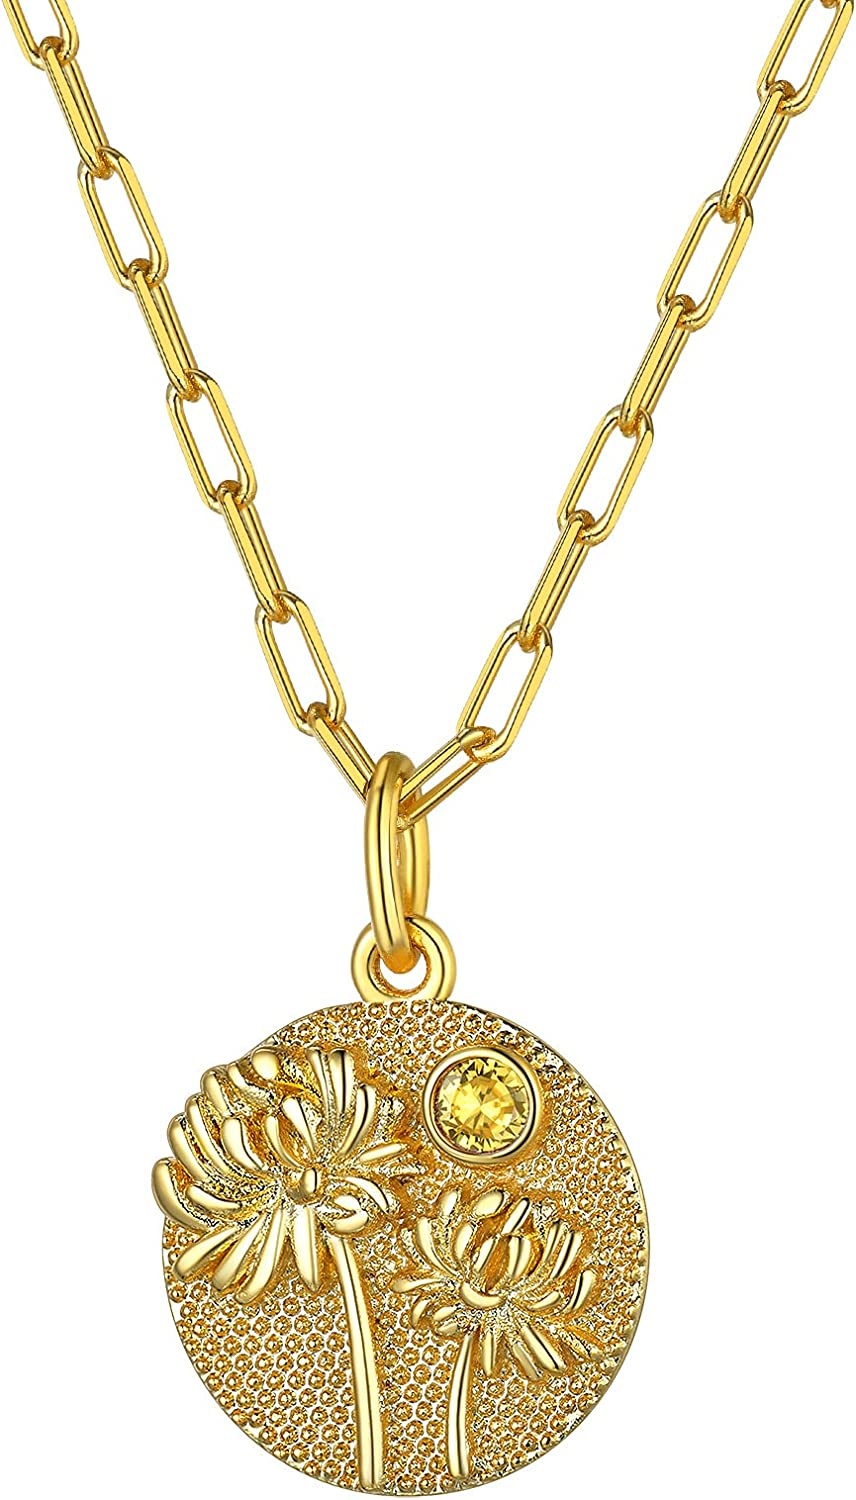 GOLDCHIC JEWELRY Personalized Birth Month Guardian Flower Necklace with Birthstone 18K Gold Plated Floral Disc Coin Necklace Birthday Flower Birthday Gift for Mom/Daughter/Best Friend